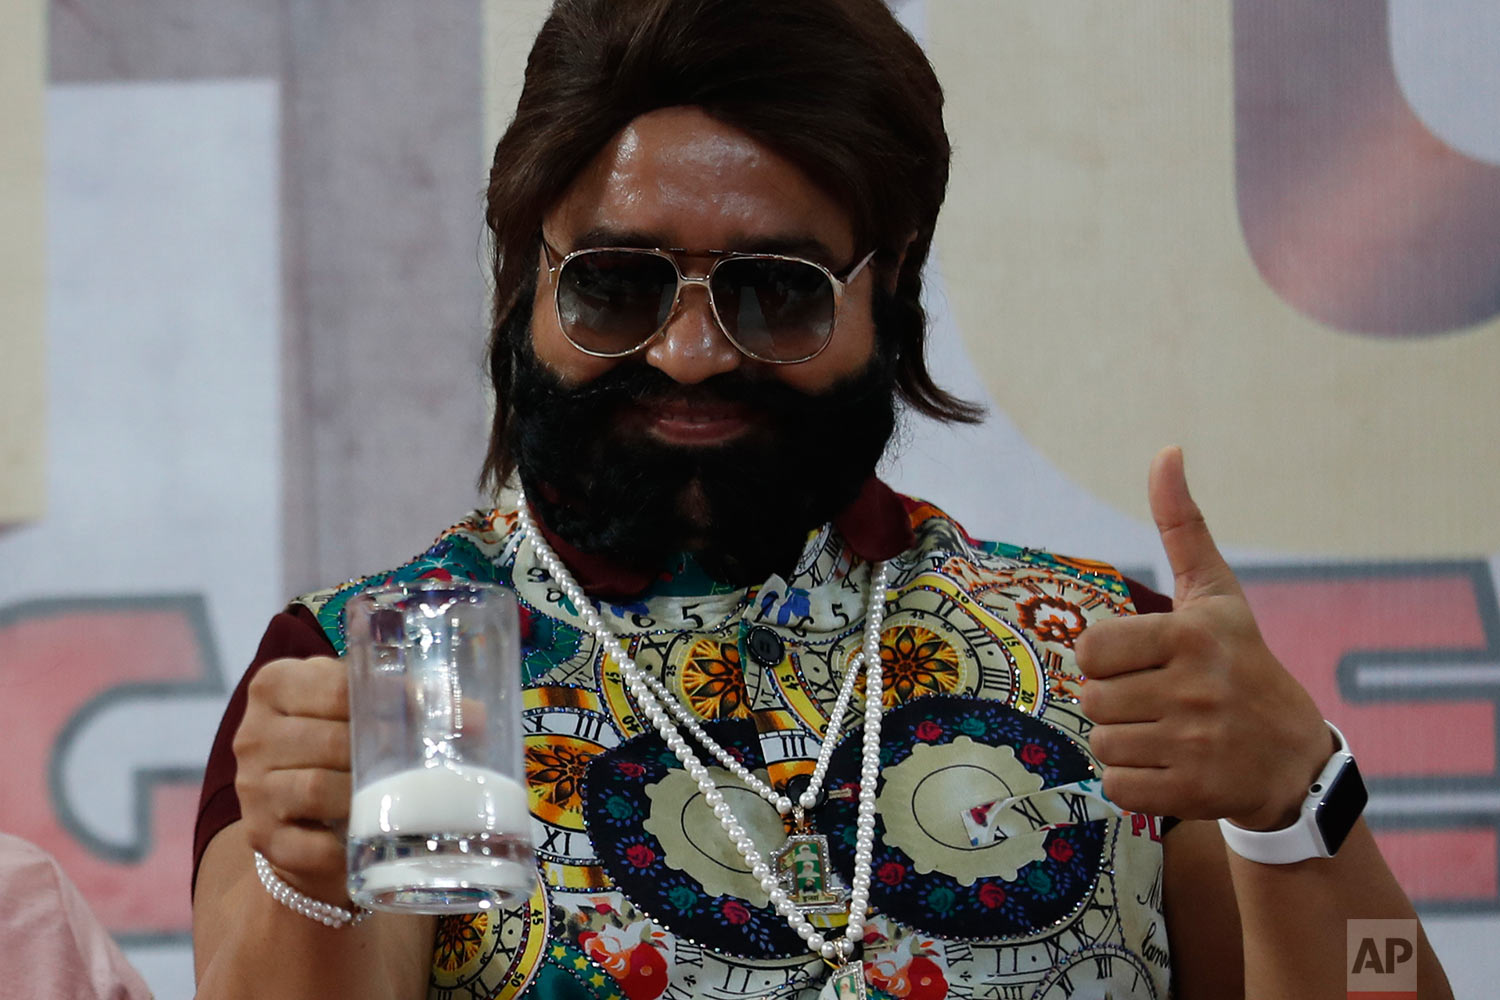 "In this May 17, 2017 photo, Indian spiritual leader turned actor who calls himself Dr. Saint Gurmeet Singh Ram Rahim Insan gestures as he holds up a glass of milk at a ""Cow Milk Party"" during the premiere of the movie ""Jattu Engineer"" in New Delhi, India.  (AP Photo/Tsering Topgyal)"